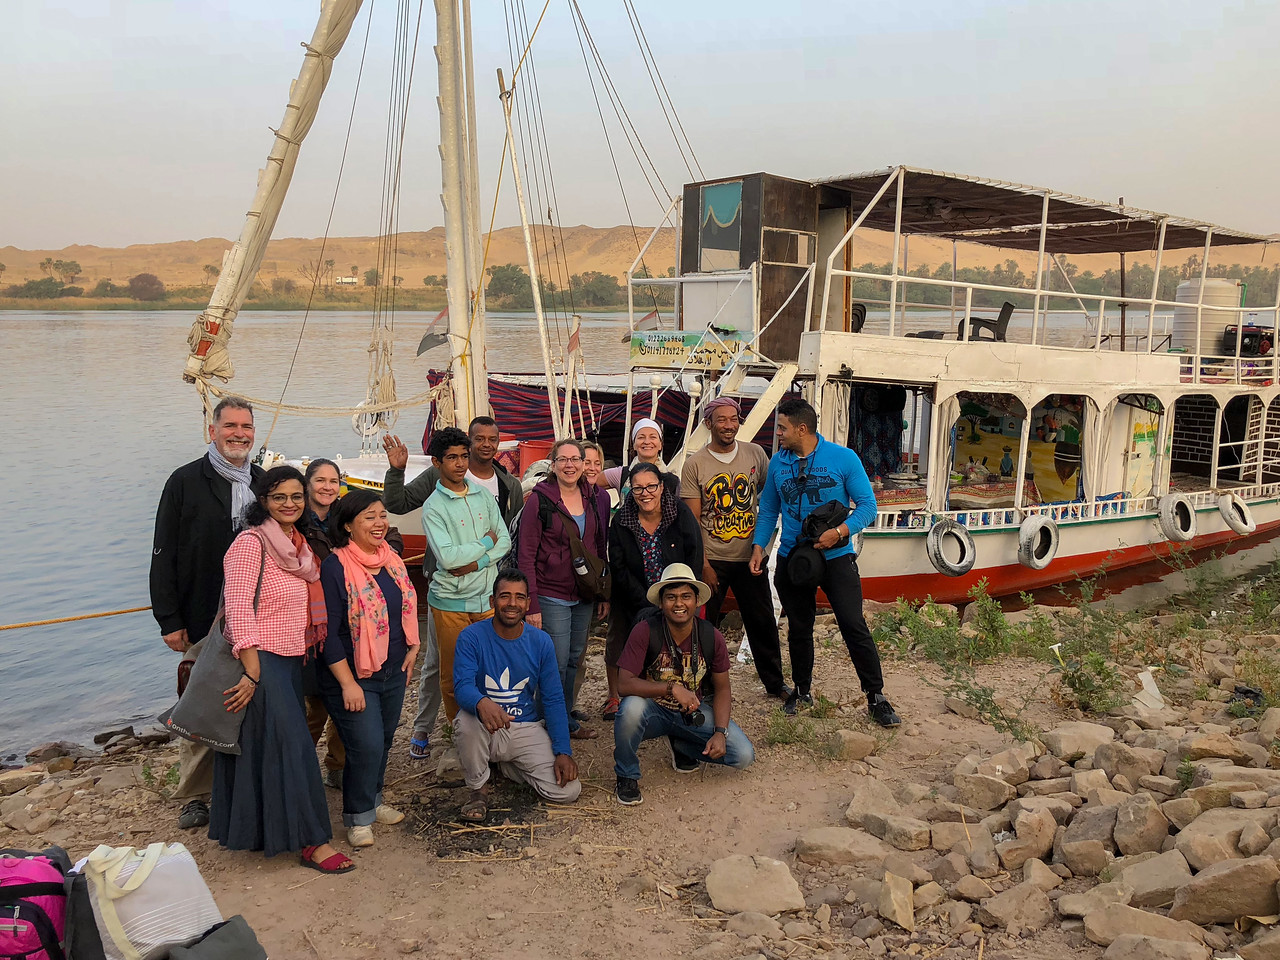 The Felucca Group